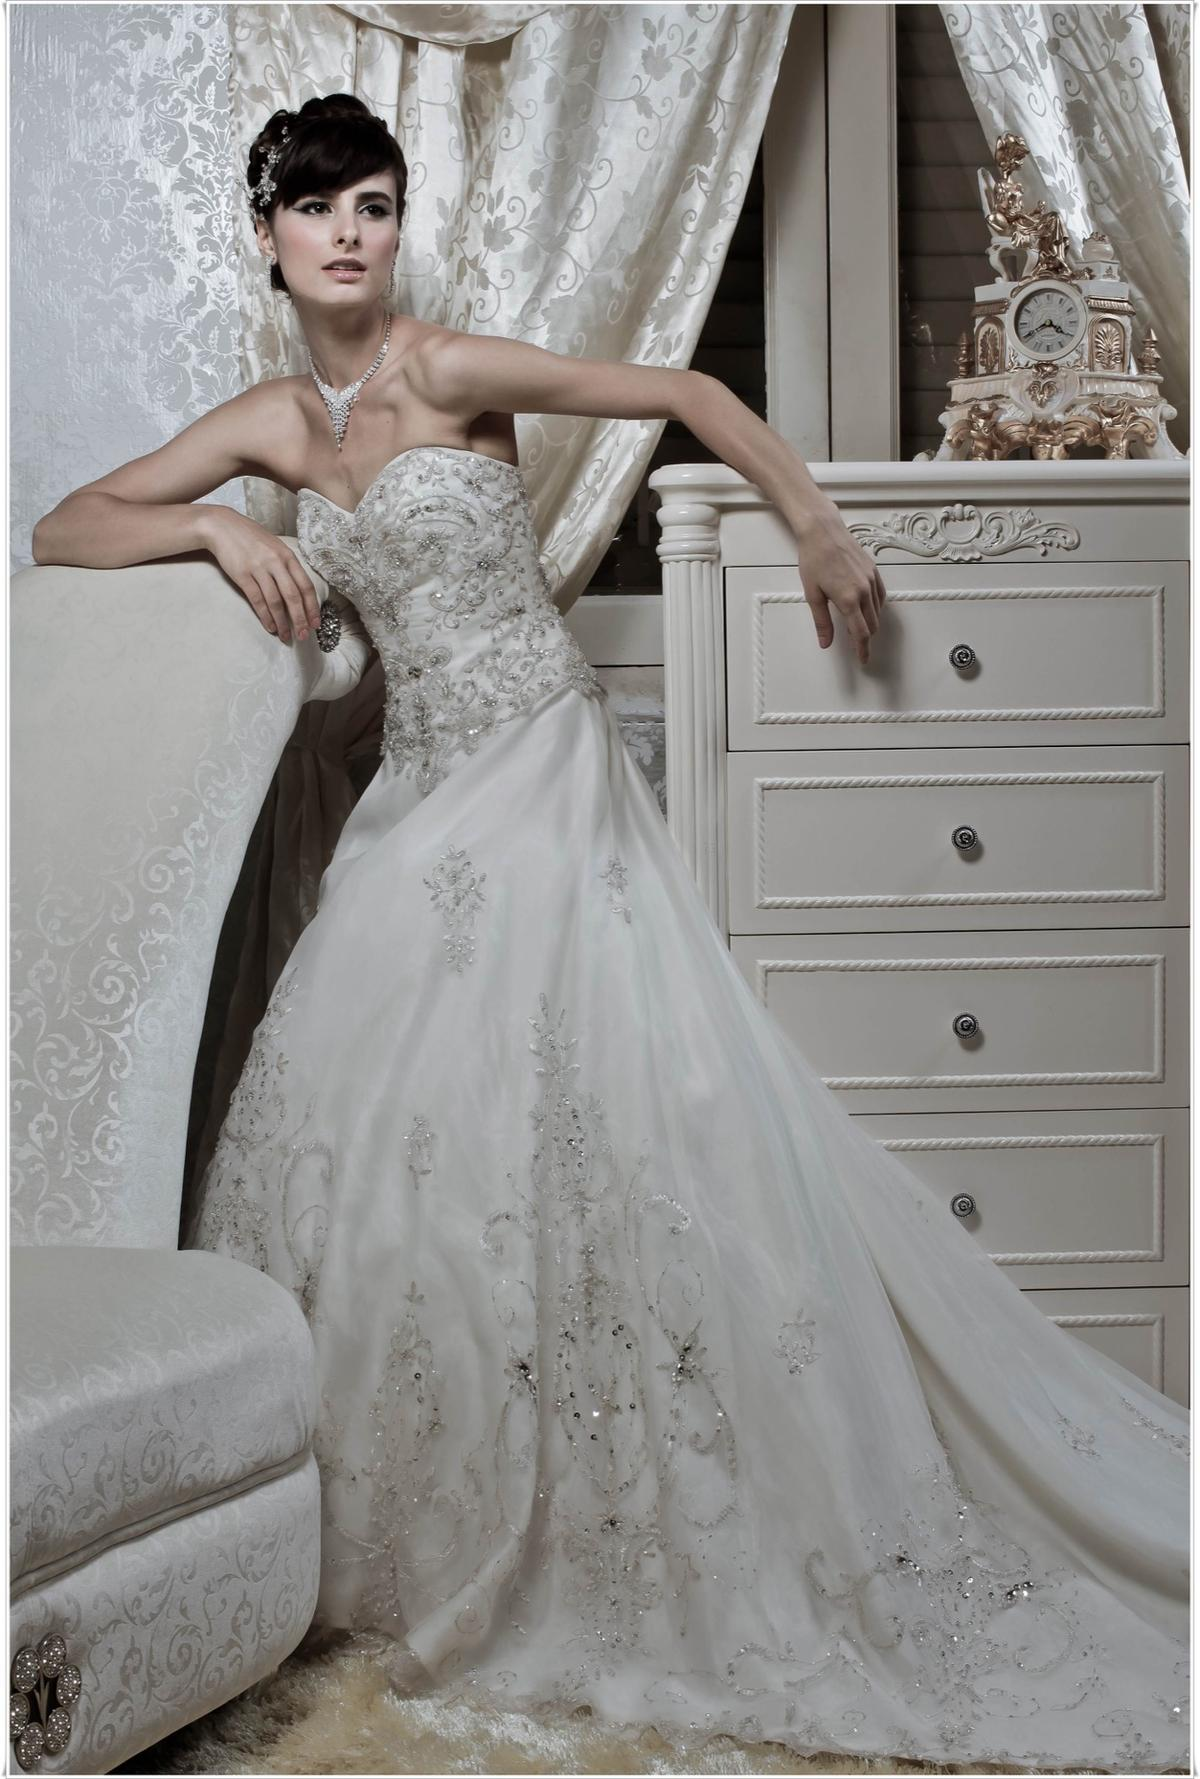 http://www.pwimages.com/images/perfectbride/23a52a09bfb7b8ee0012f5942ae7f155-206.jpg